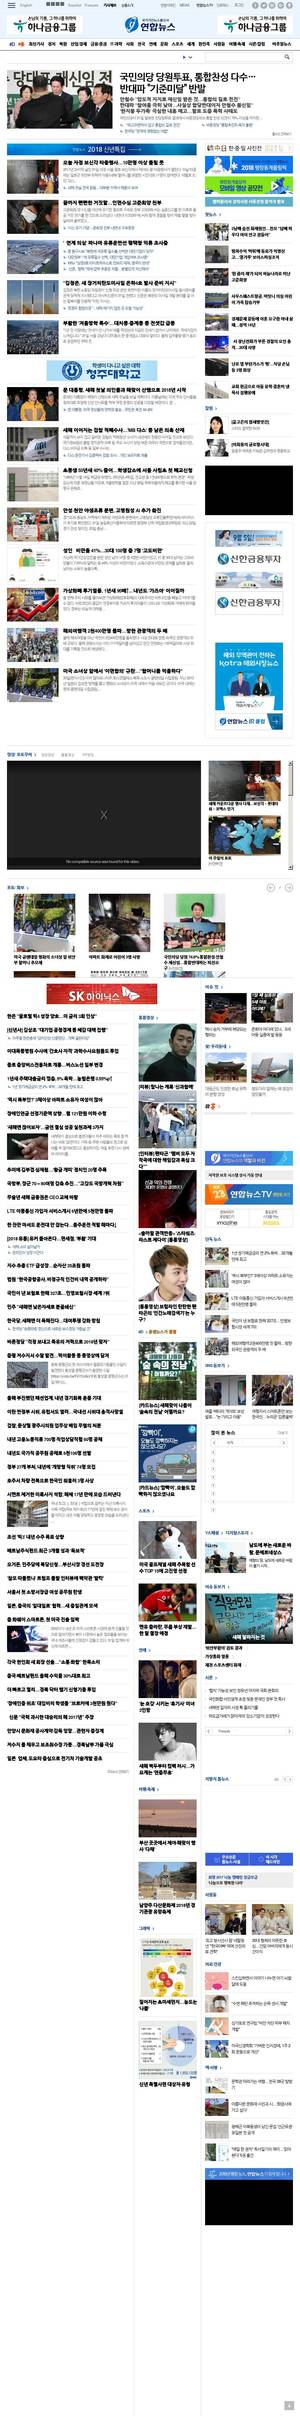 yonhapnews.co.kr 스샷